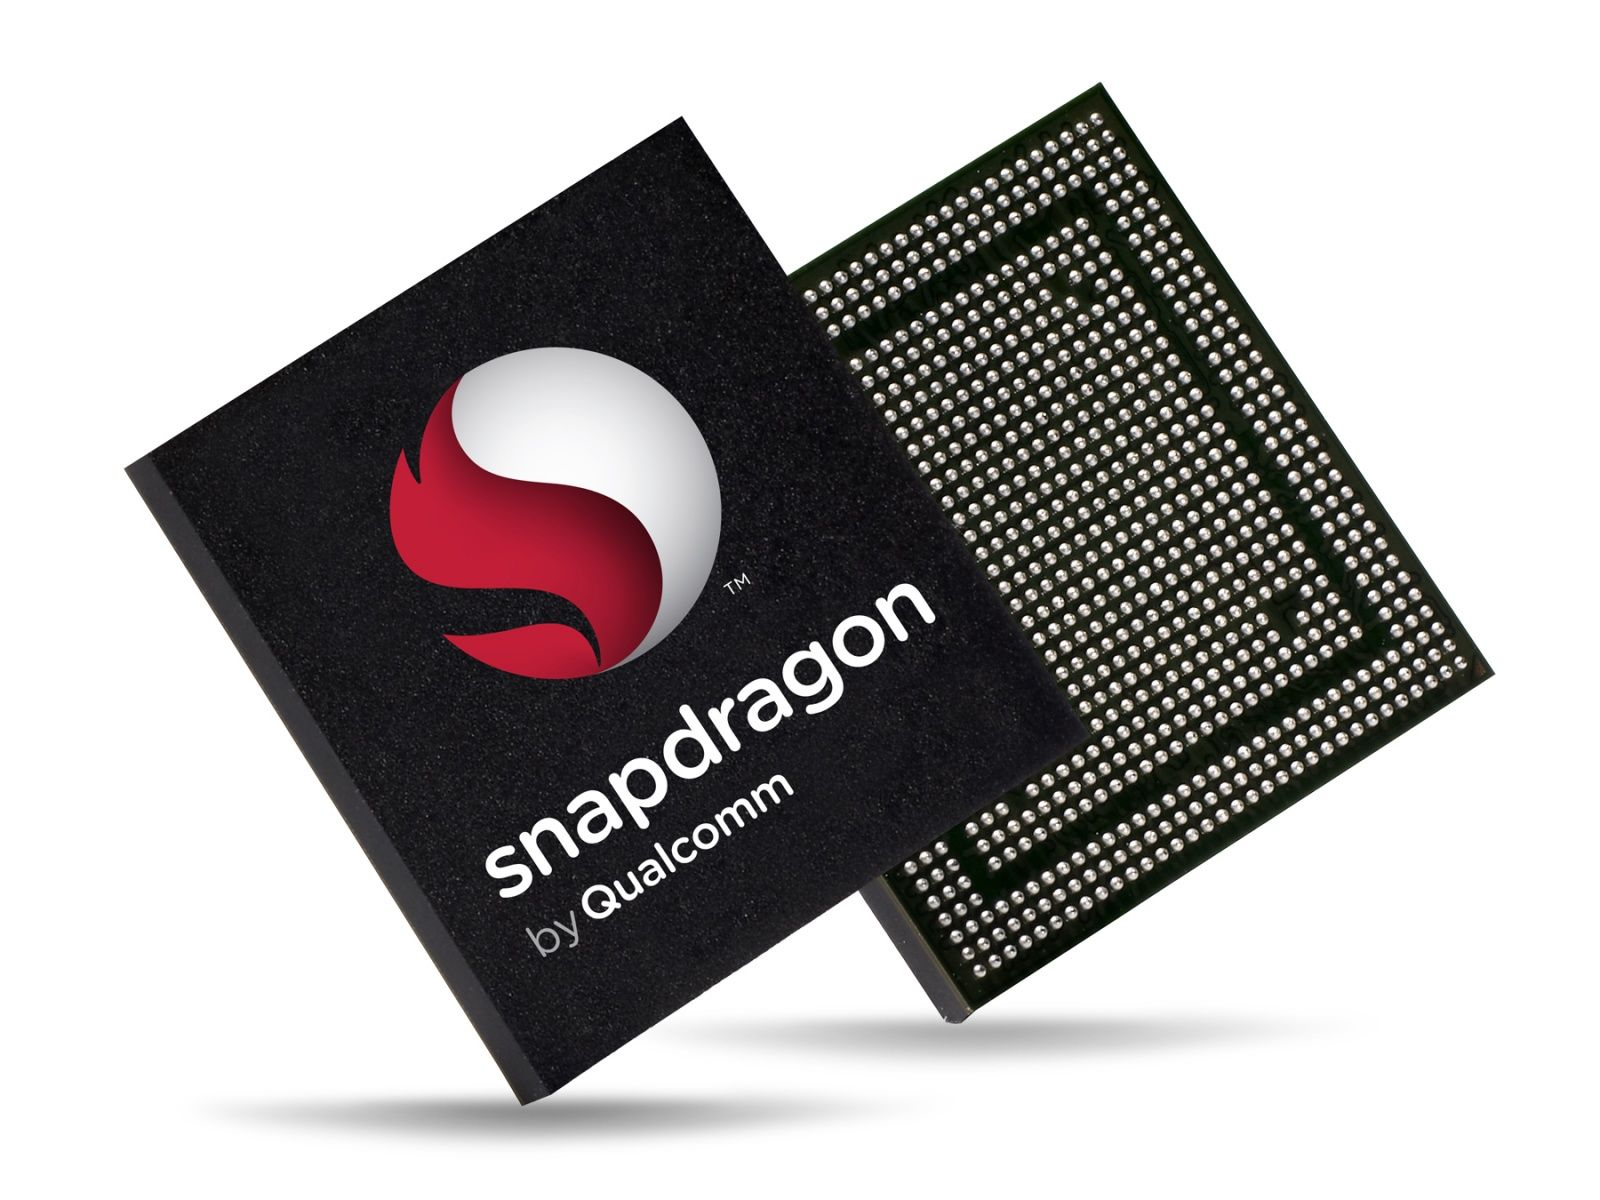 Galaxy S6 May Ditch Snapdragon 810 Due To Overheating Issues